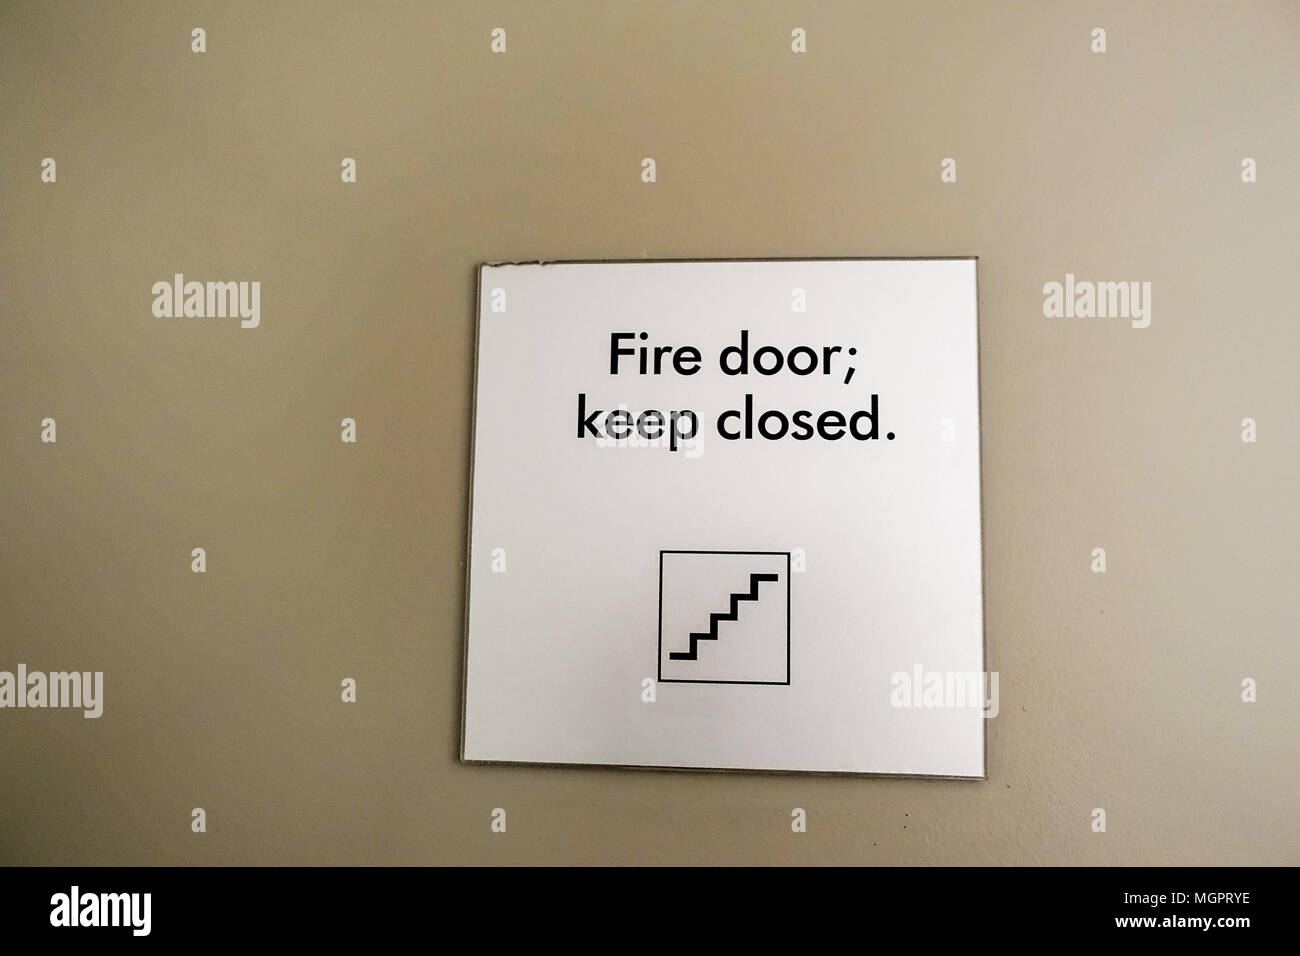 Fire door keep closed sign inside apartment high rise building in Vancouver BC Canada & Fire door keep closed sign inside apartment high rise building in ...